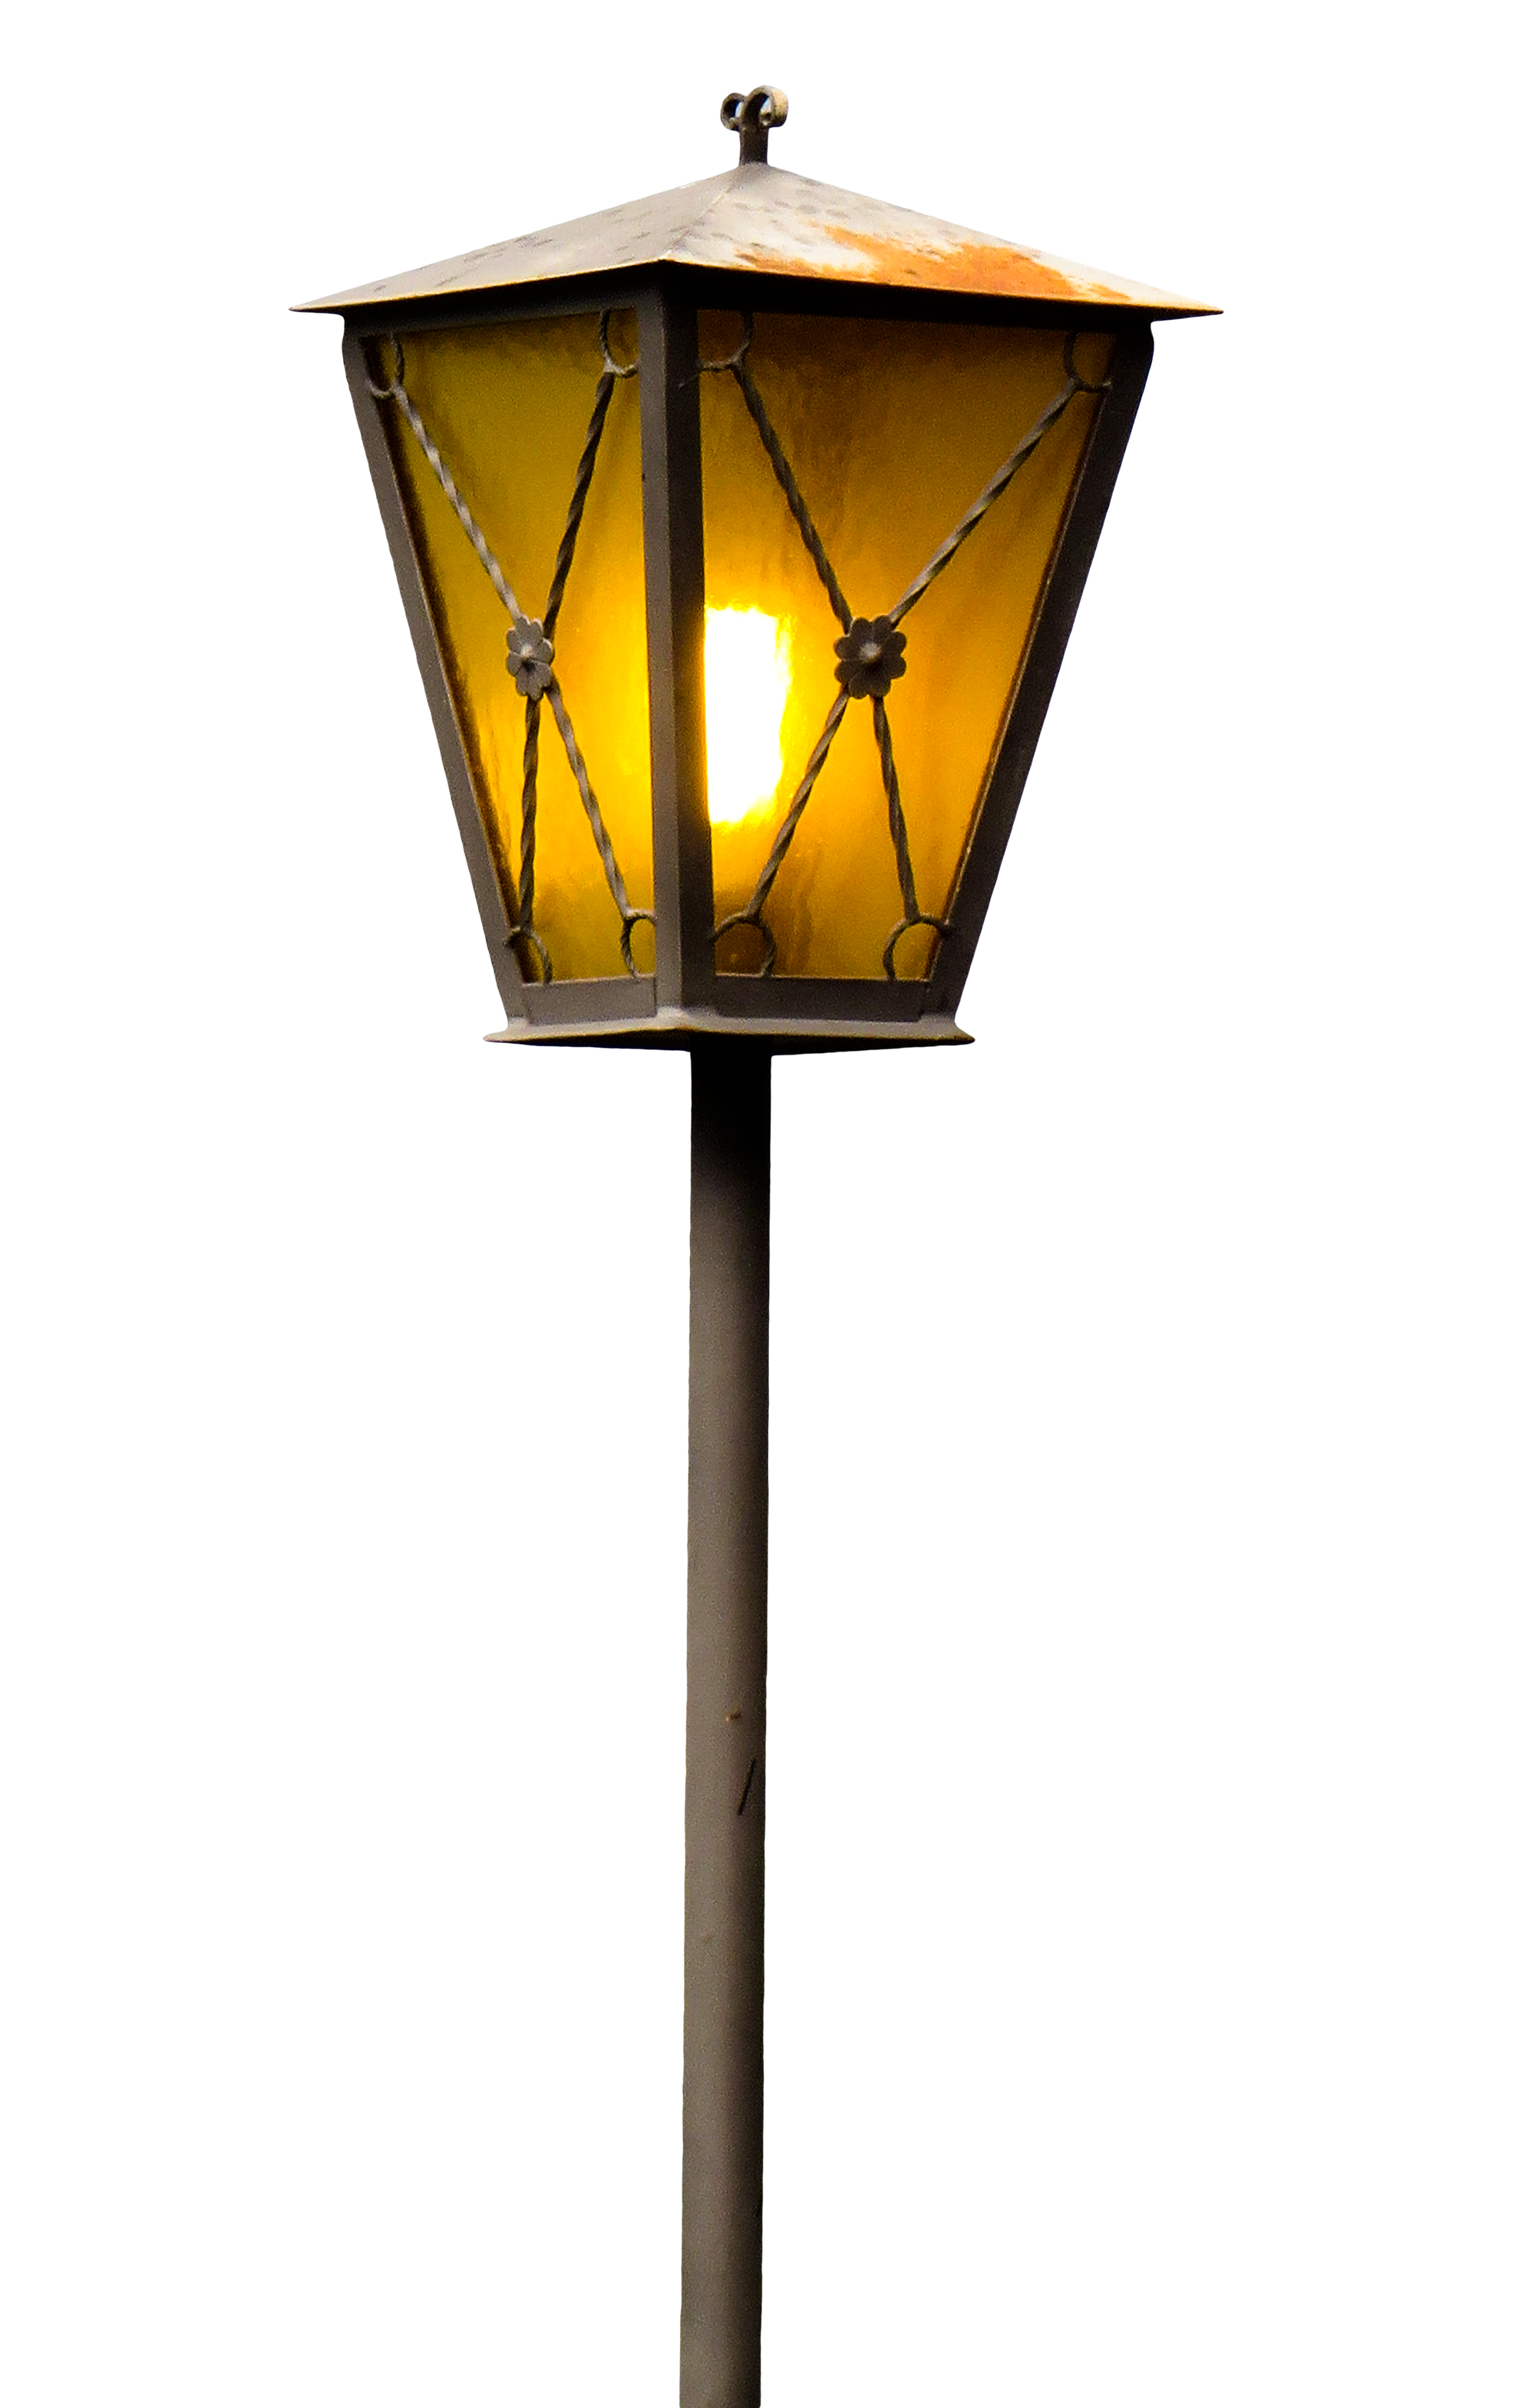 Street lamp png. Old object in photo